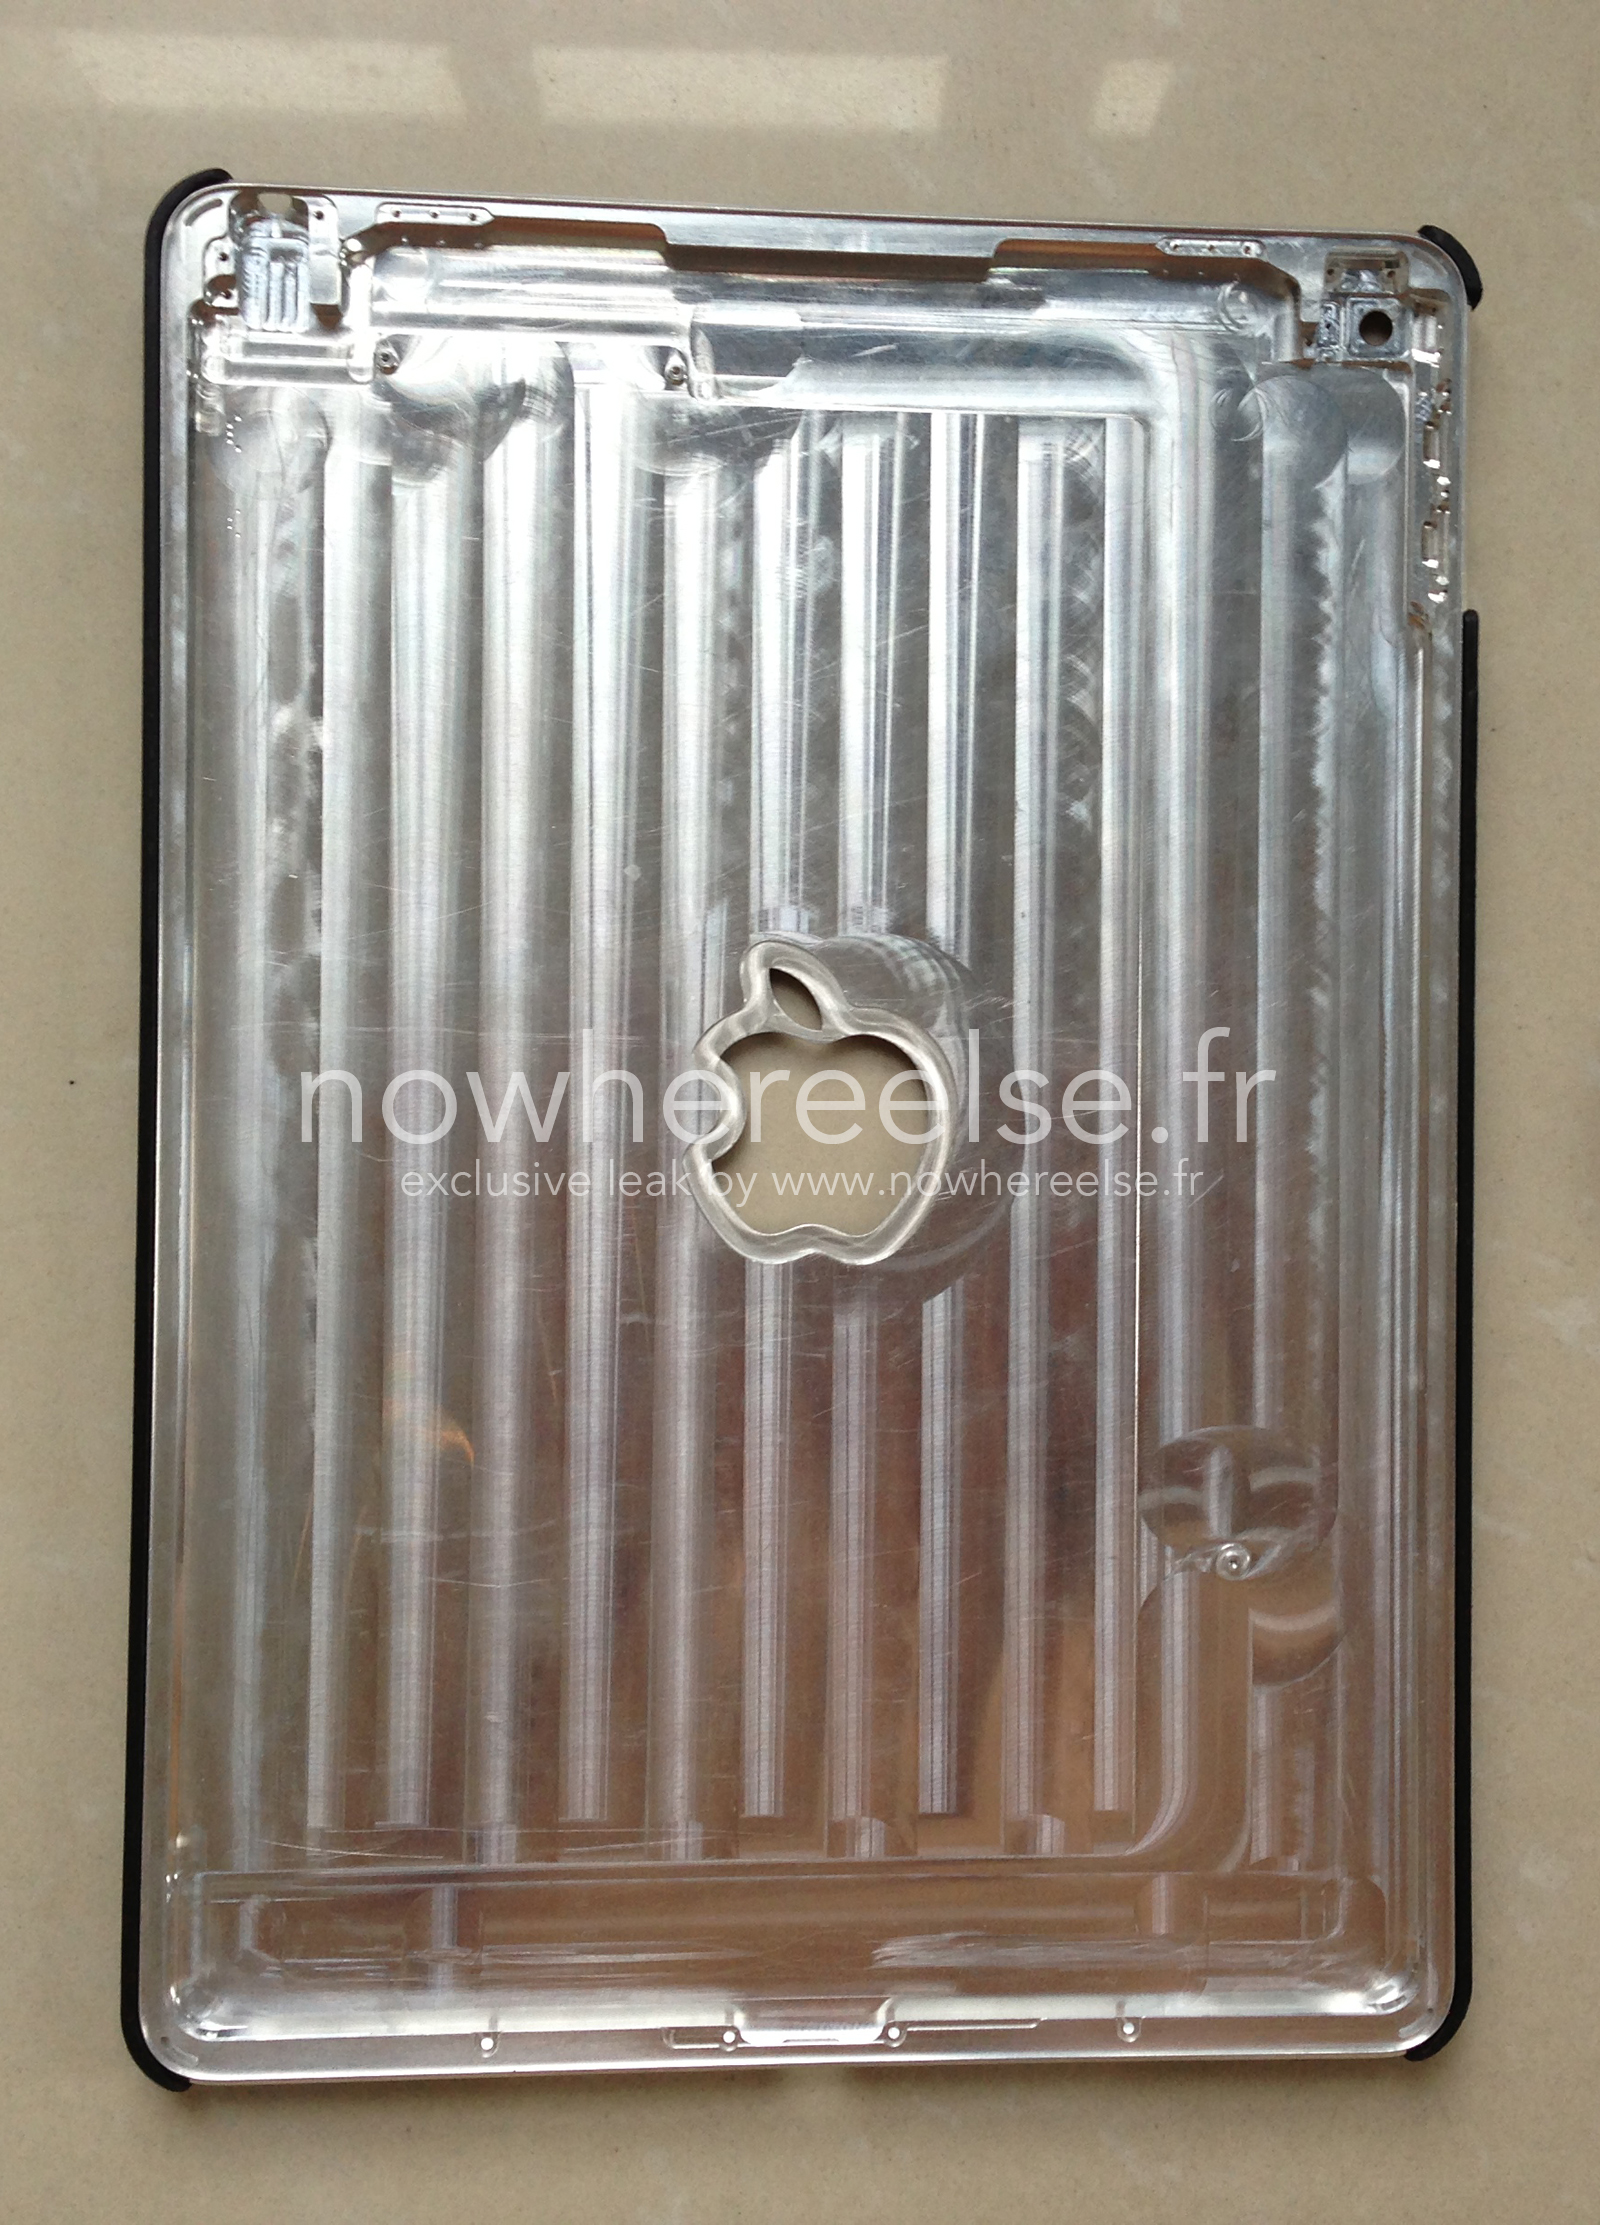 iPad Air 2 (rear panel, Nowhere Else 002)